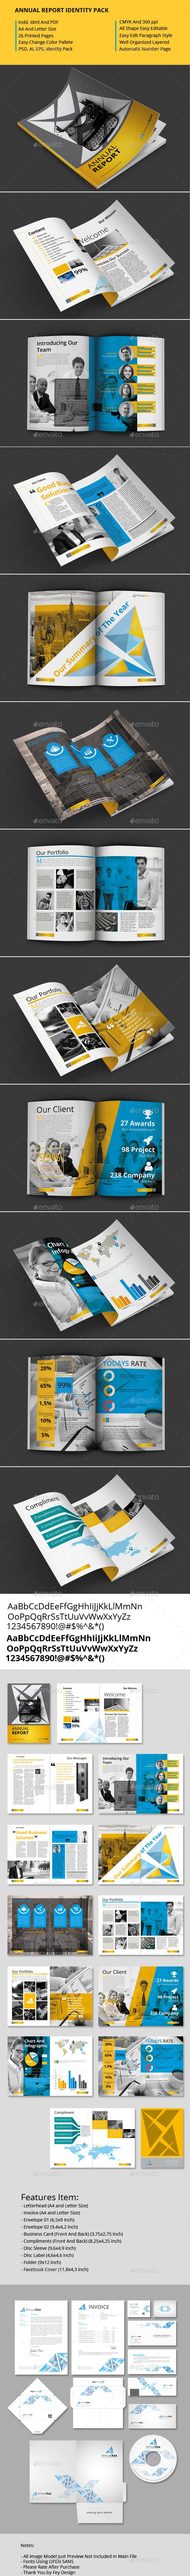 Annual Report Identity Pack - Proposals & Invoices Stationery